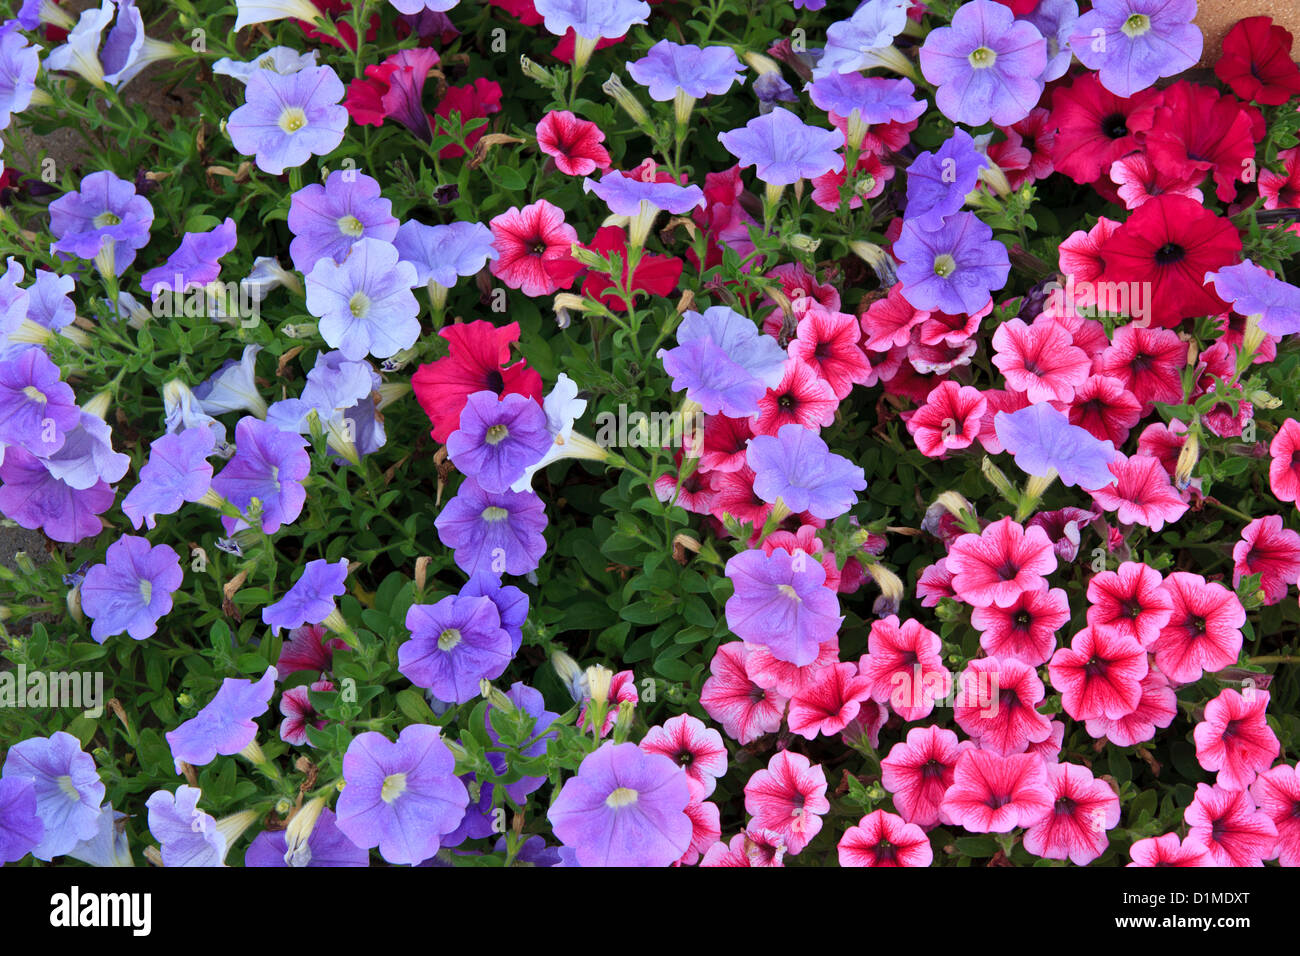 Petunia Flower Bed High Resolution Stock Photography And Images Alamy